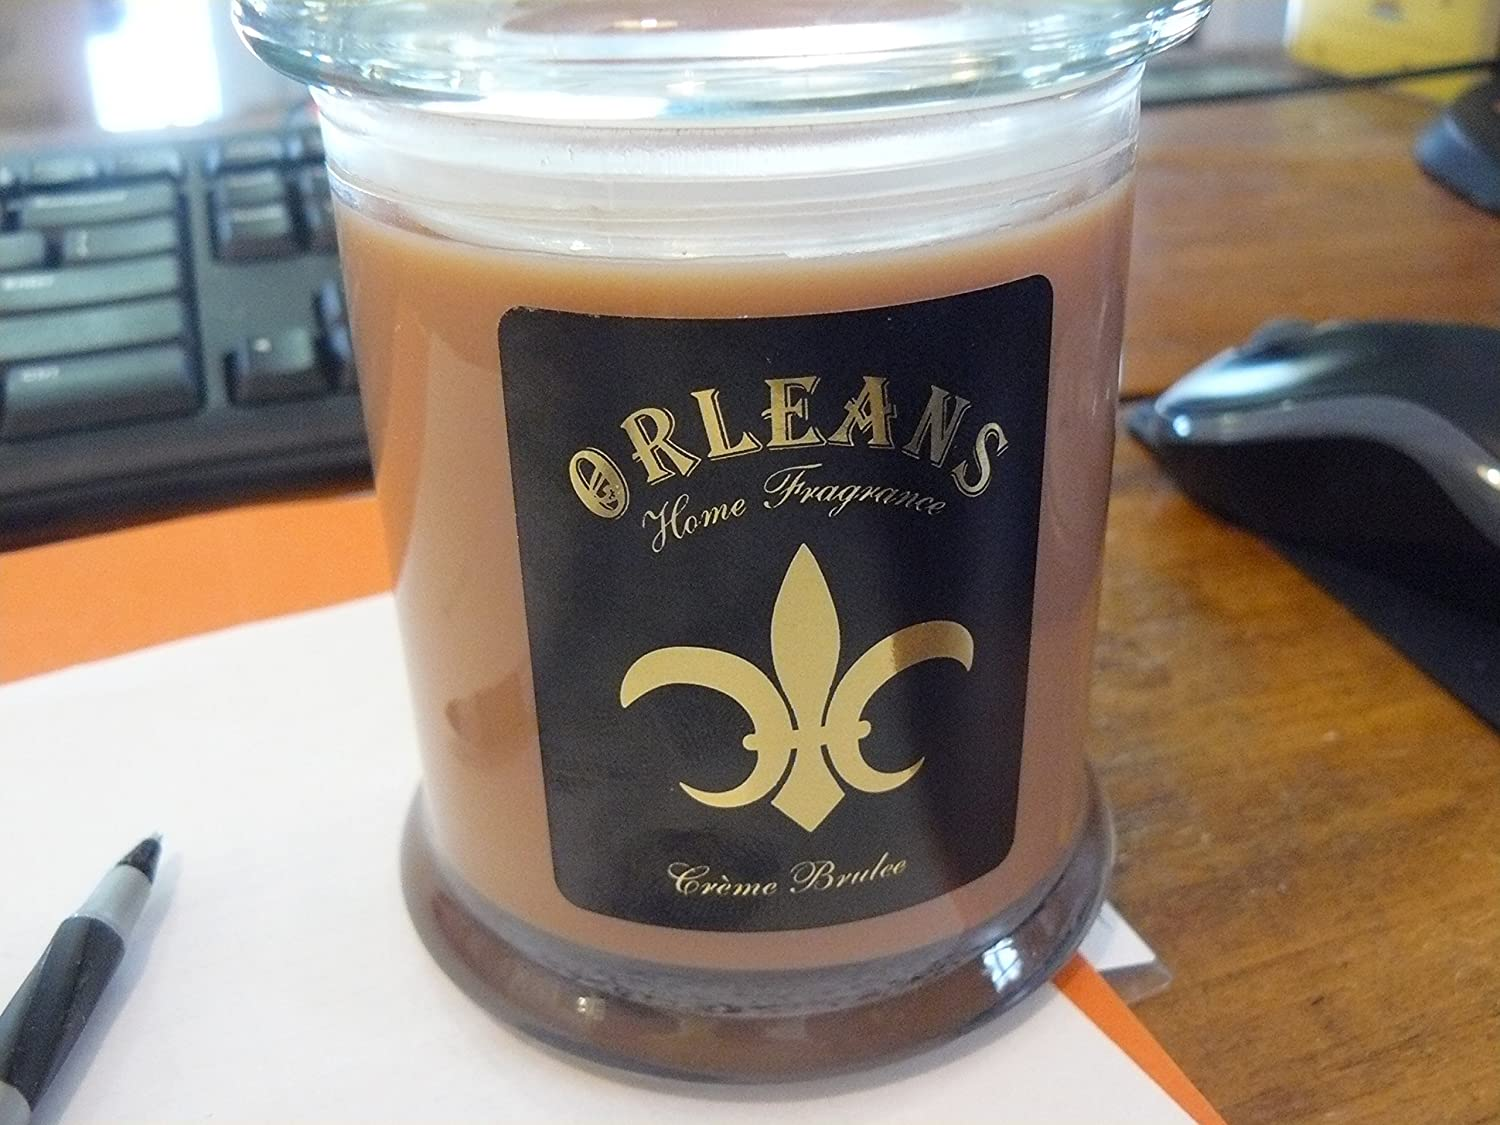 Orleans Creme Burlee 2 wick Candle By Fragrances